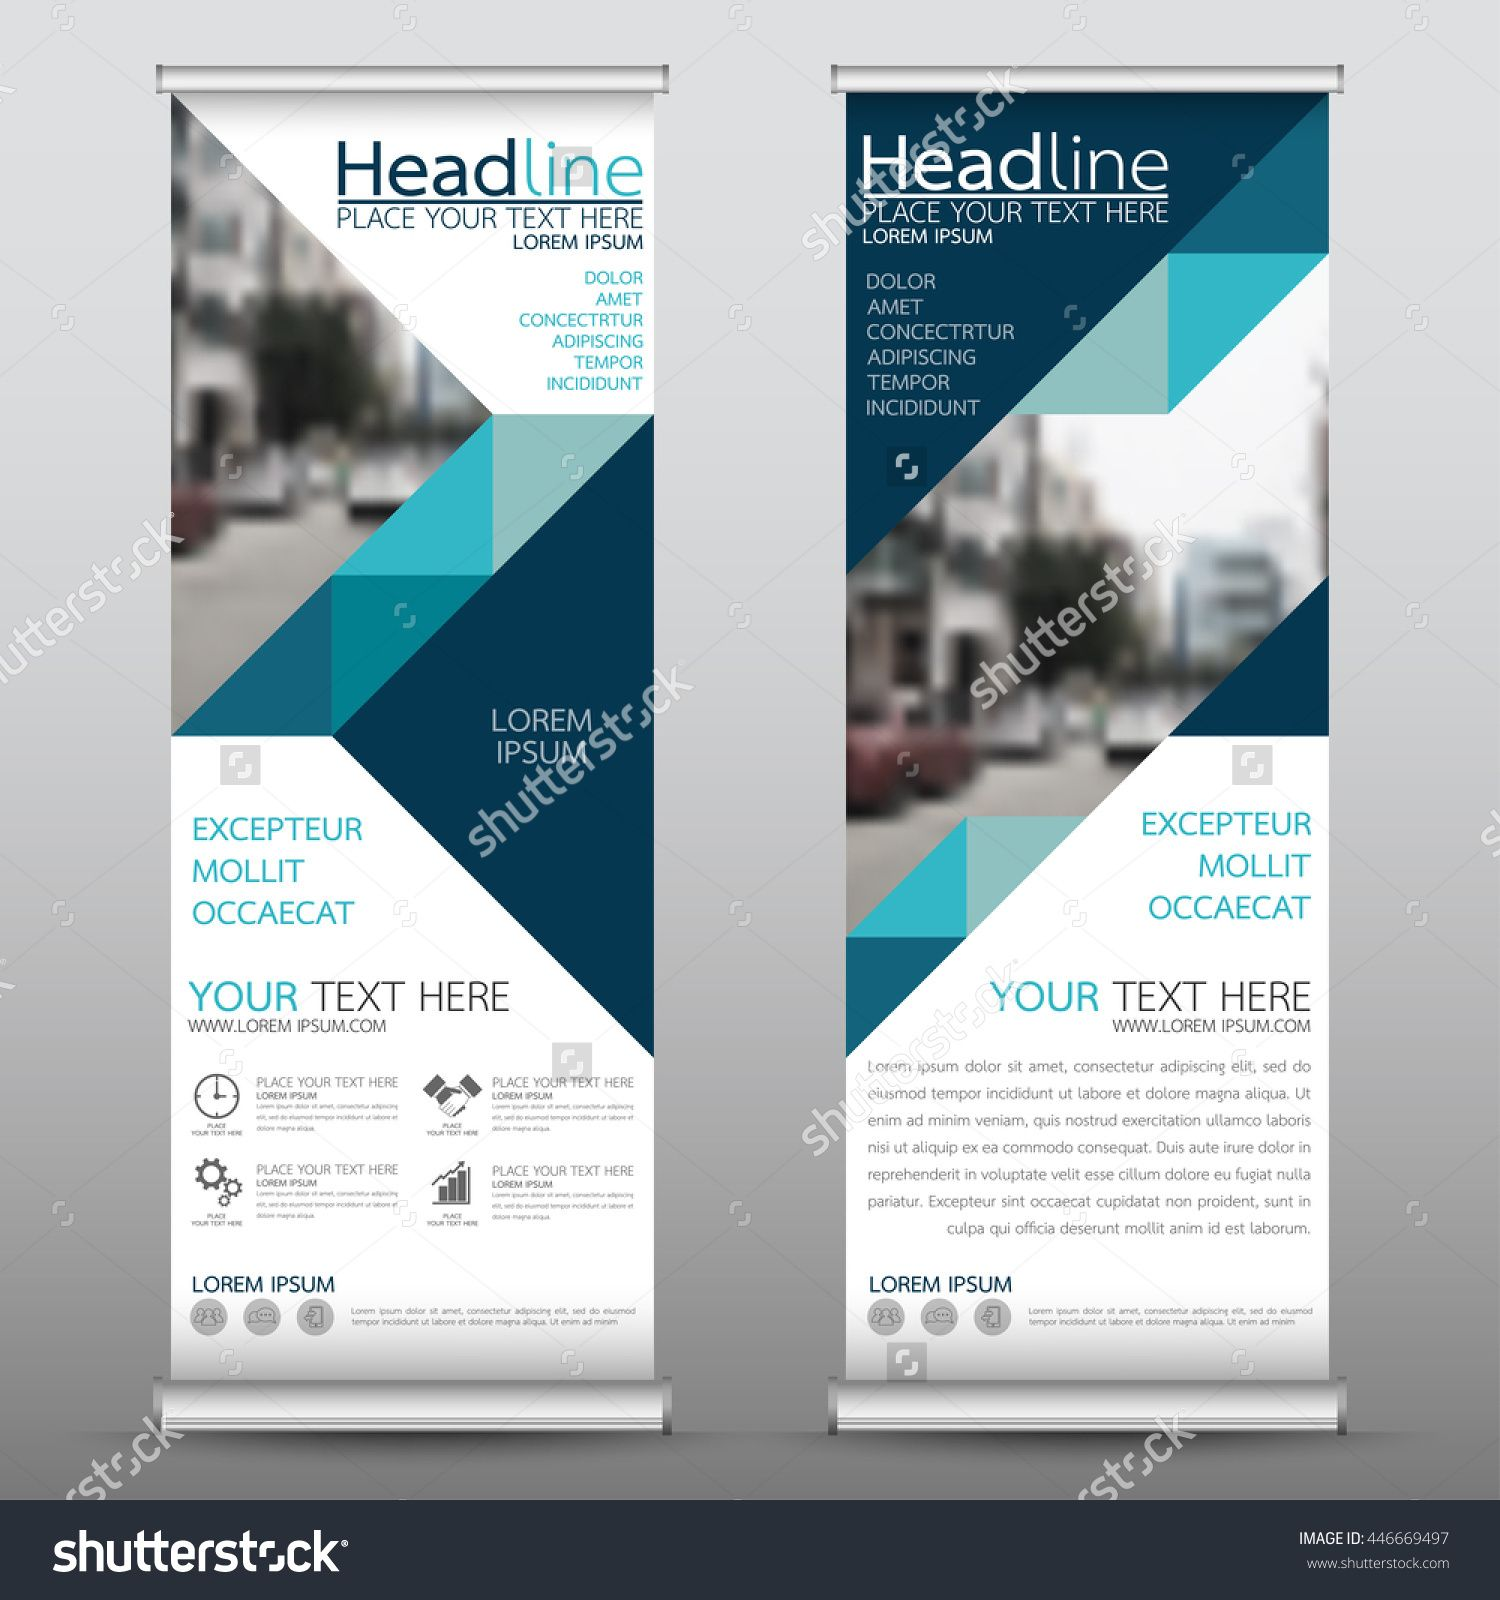 Banner Design Ideas rollup banner design for a client Blue Roll Up Business Brochure Flyer Banner Design Vertical Template Vector Cover Presentation Abstract Geometric